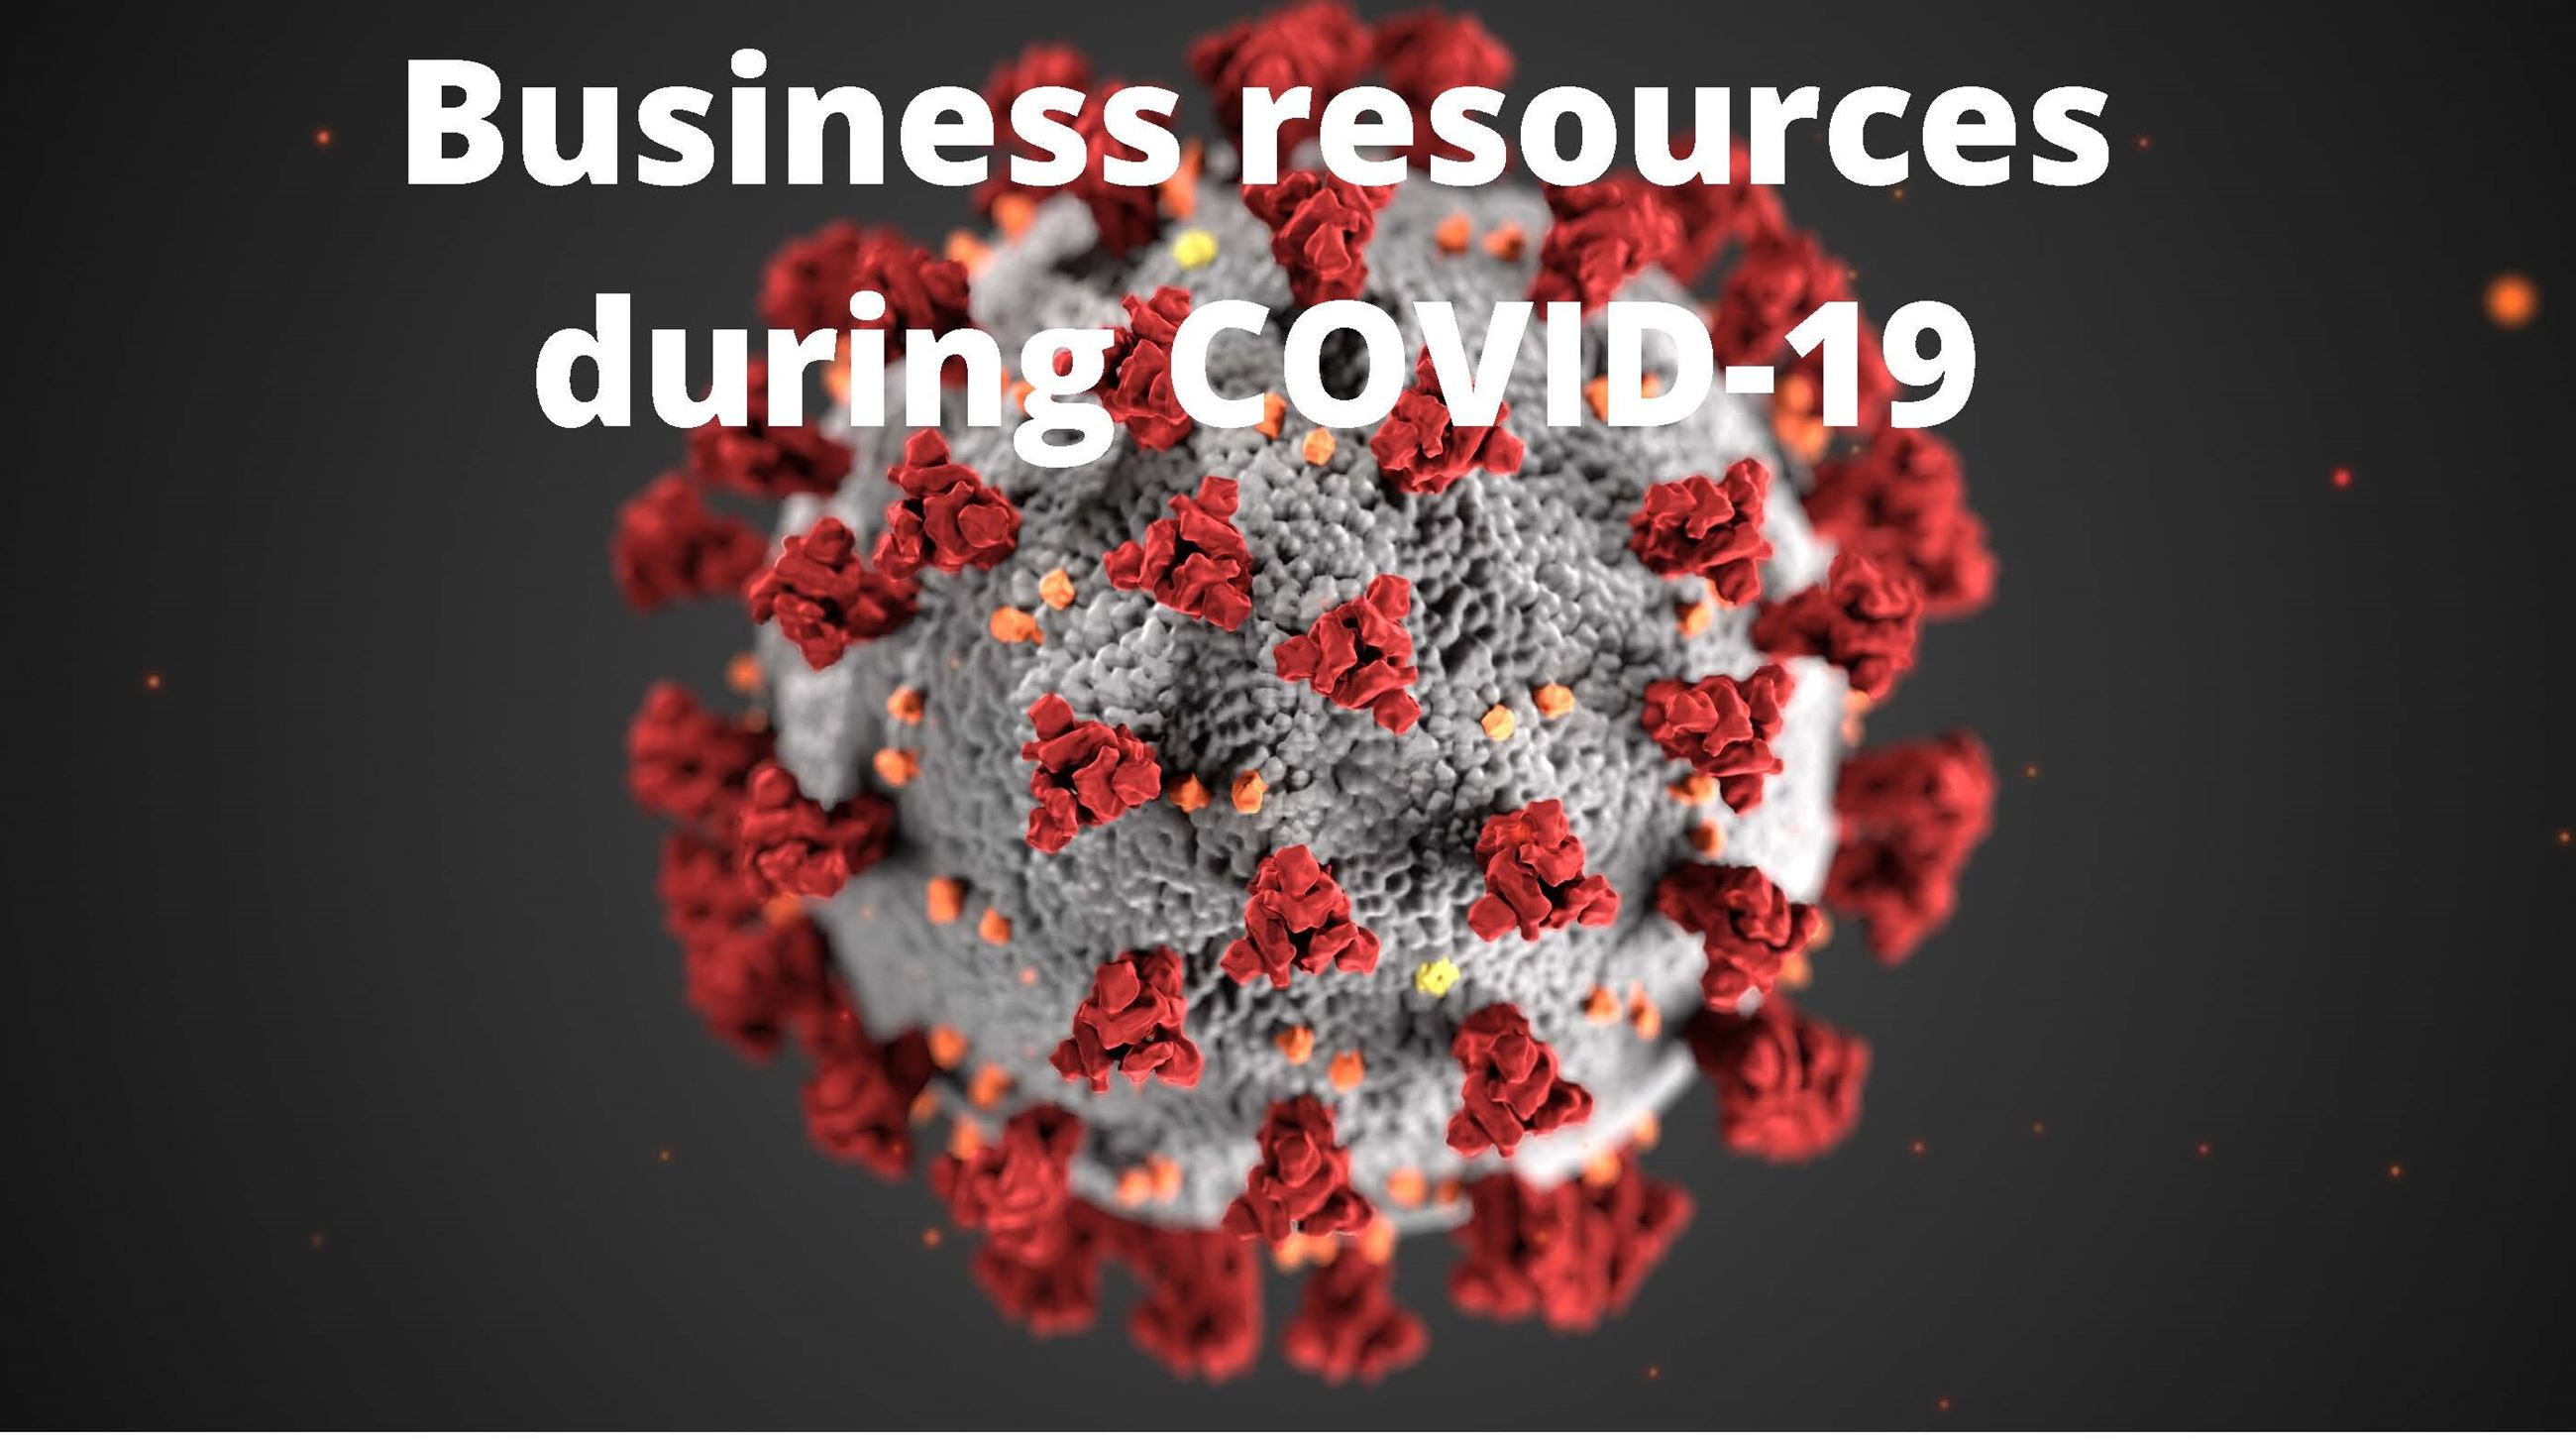 Business resources during COVID-19